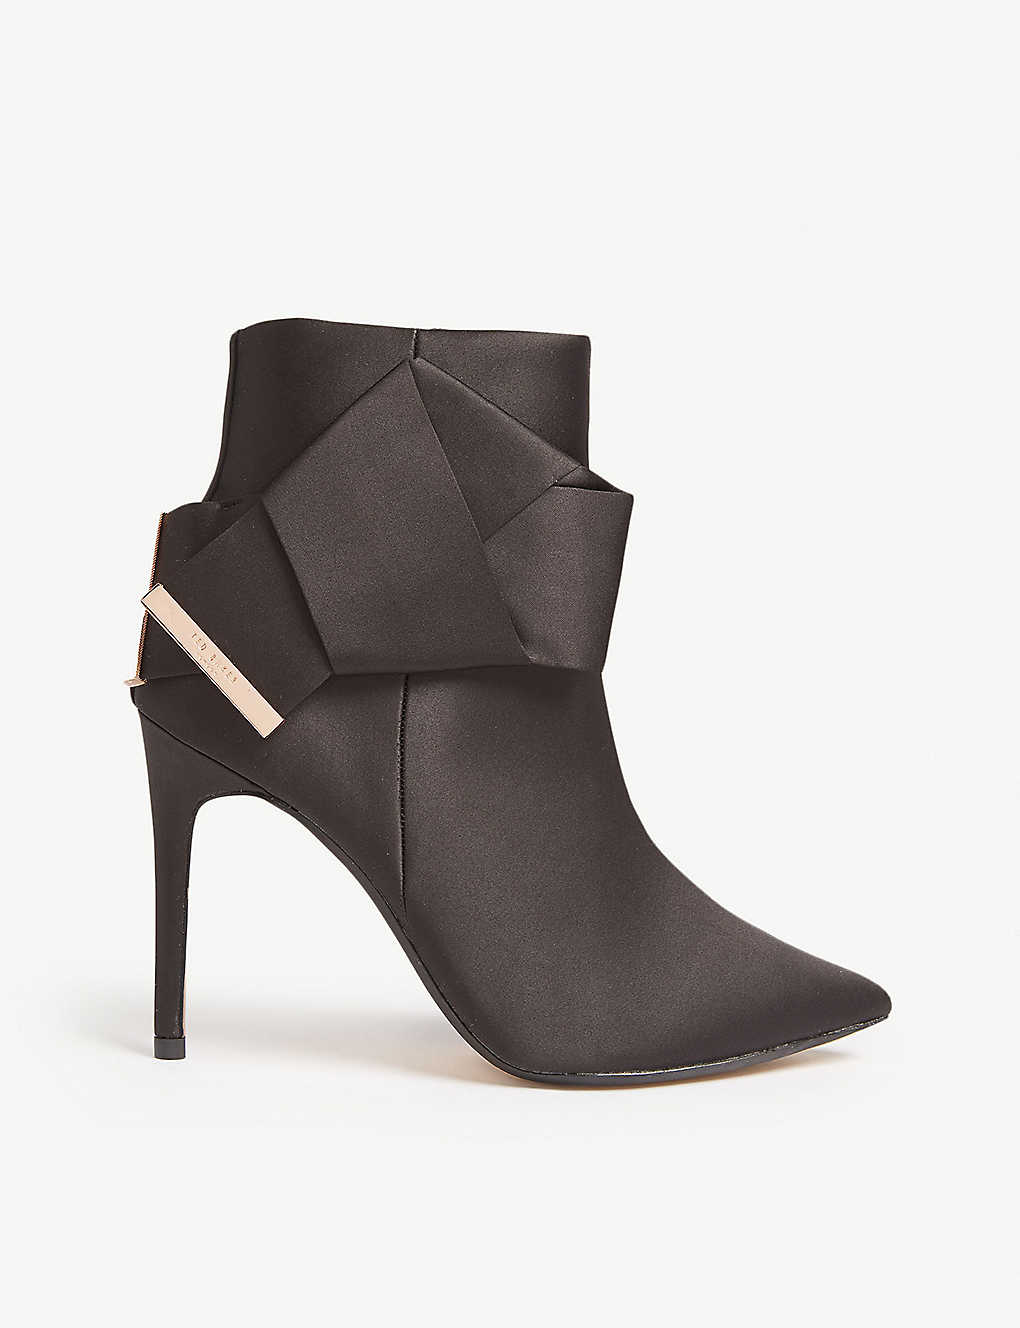 80a5ea24e TED BAKER - Celiah satin ankle boots